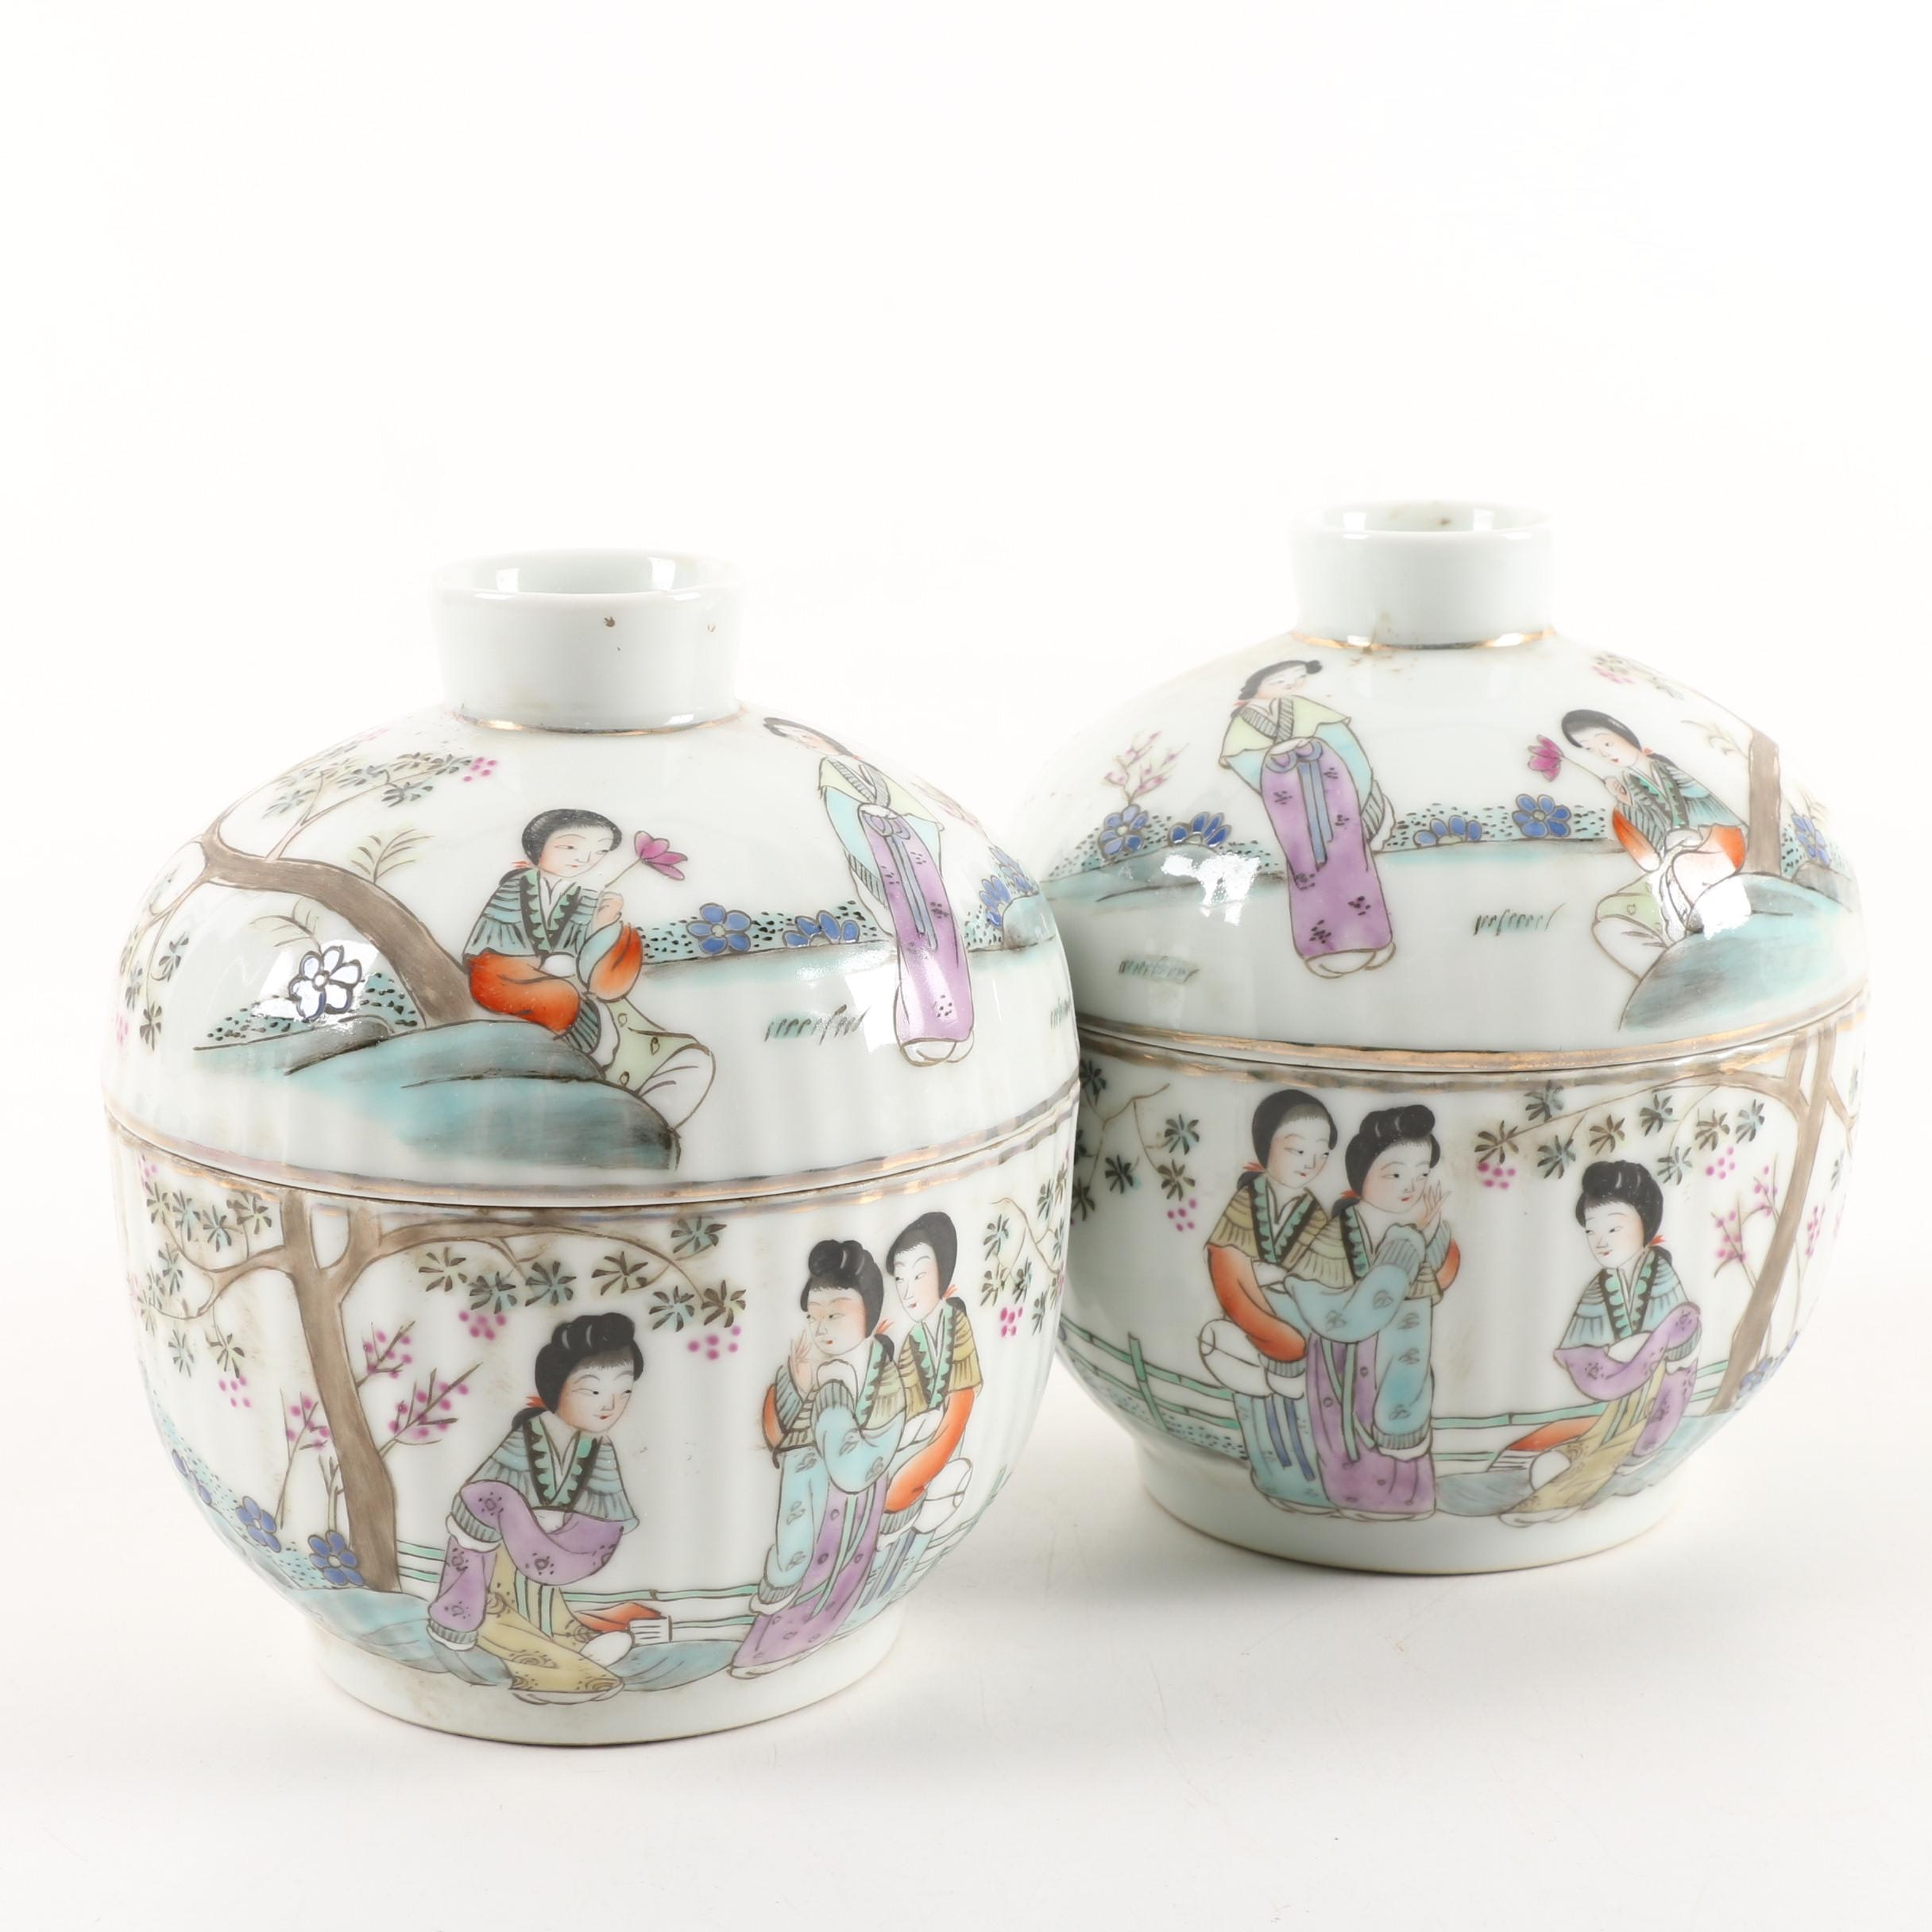 Chinese Tang Zizhen Hand-Painted Ceramic Rice Bowls with Lids